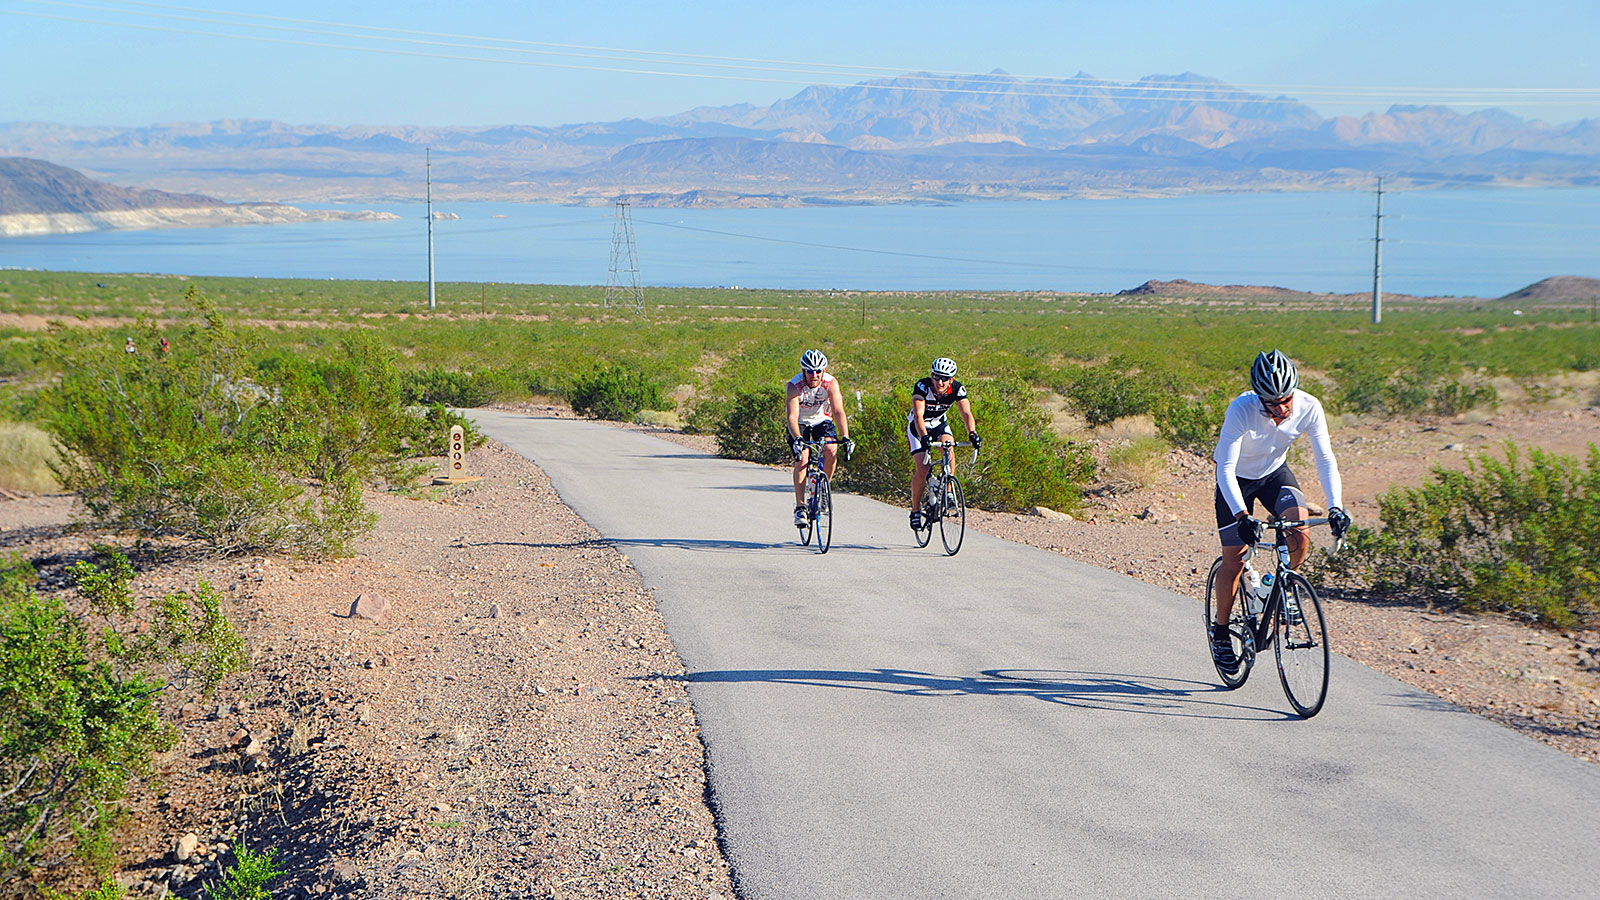 Best Las Vegas trails